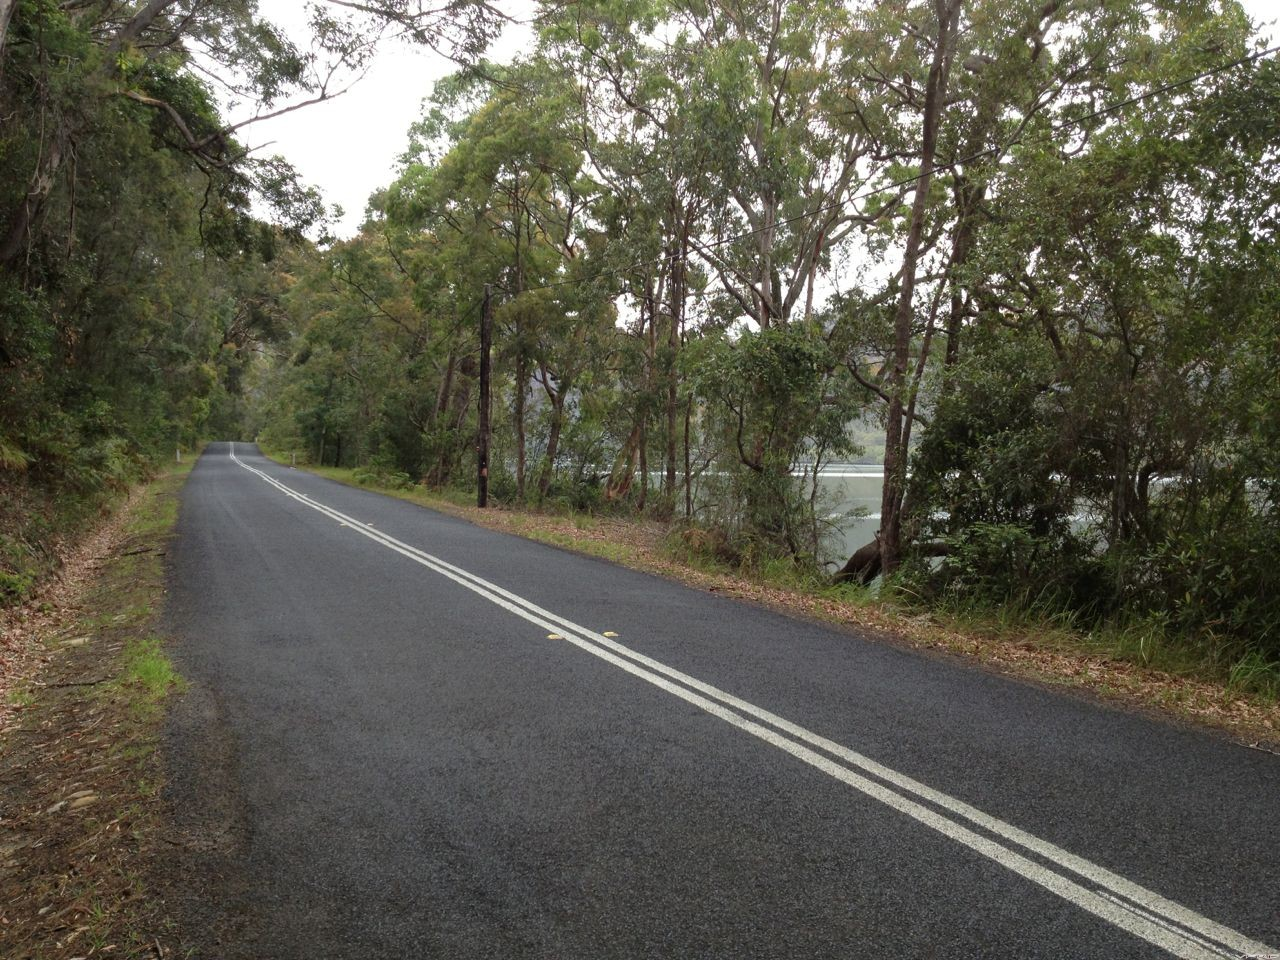 Wiseman's Ferry Rd. Next to Nepean River.